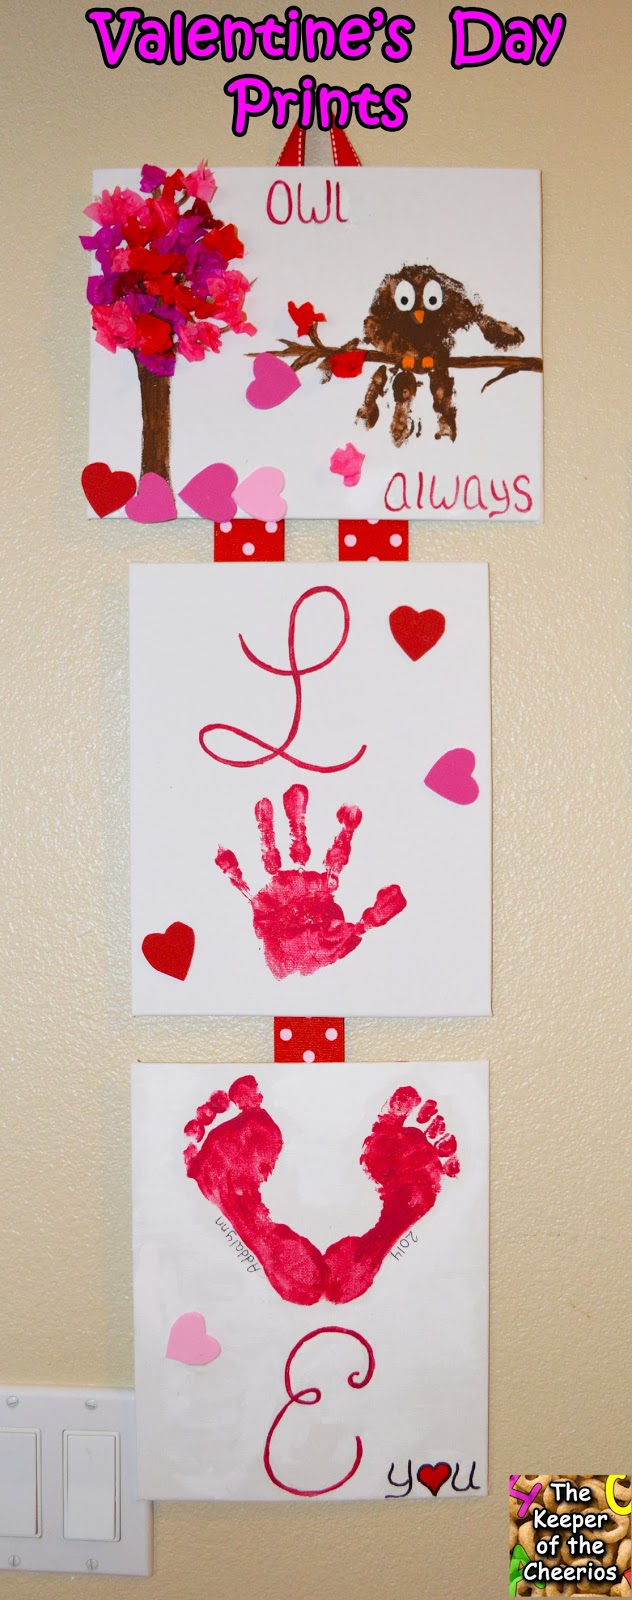 Valentines Day Hand And Footprint Craft The Keeper Of